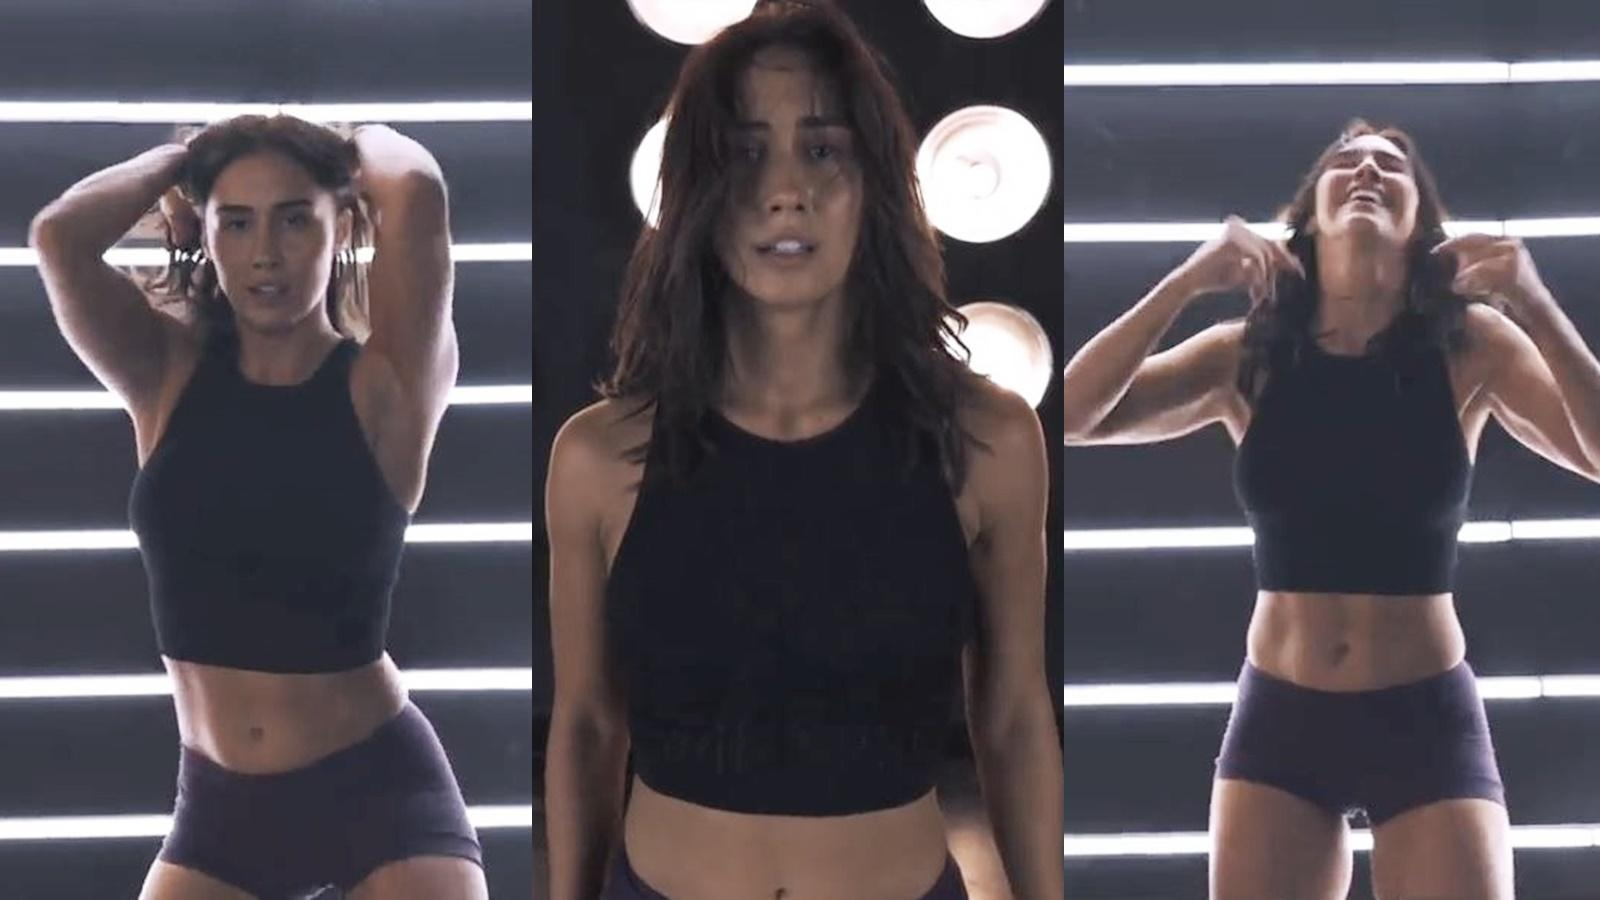 lauren-gottliebs-latest-dance-video-is-flawless-as-ever-and-it-is-a-must-watch